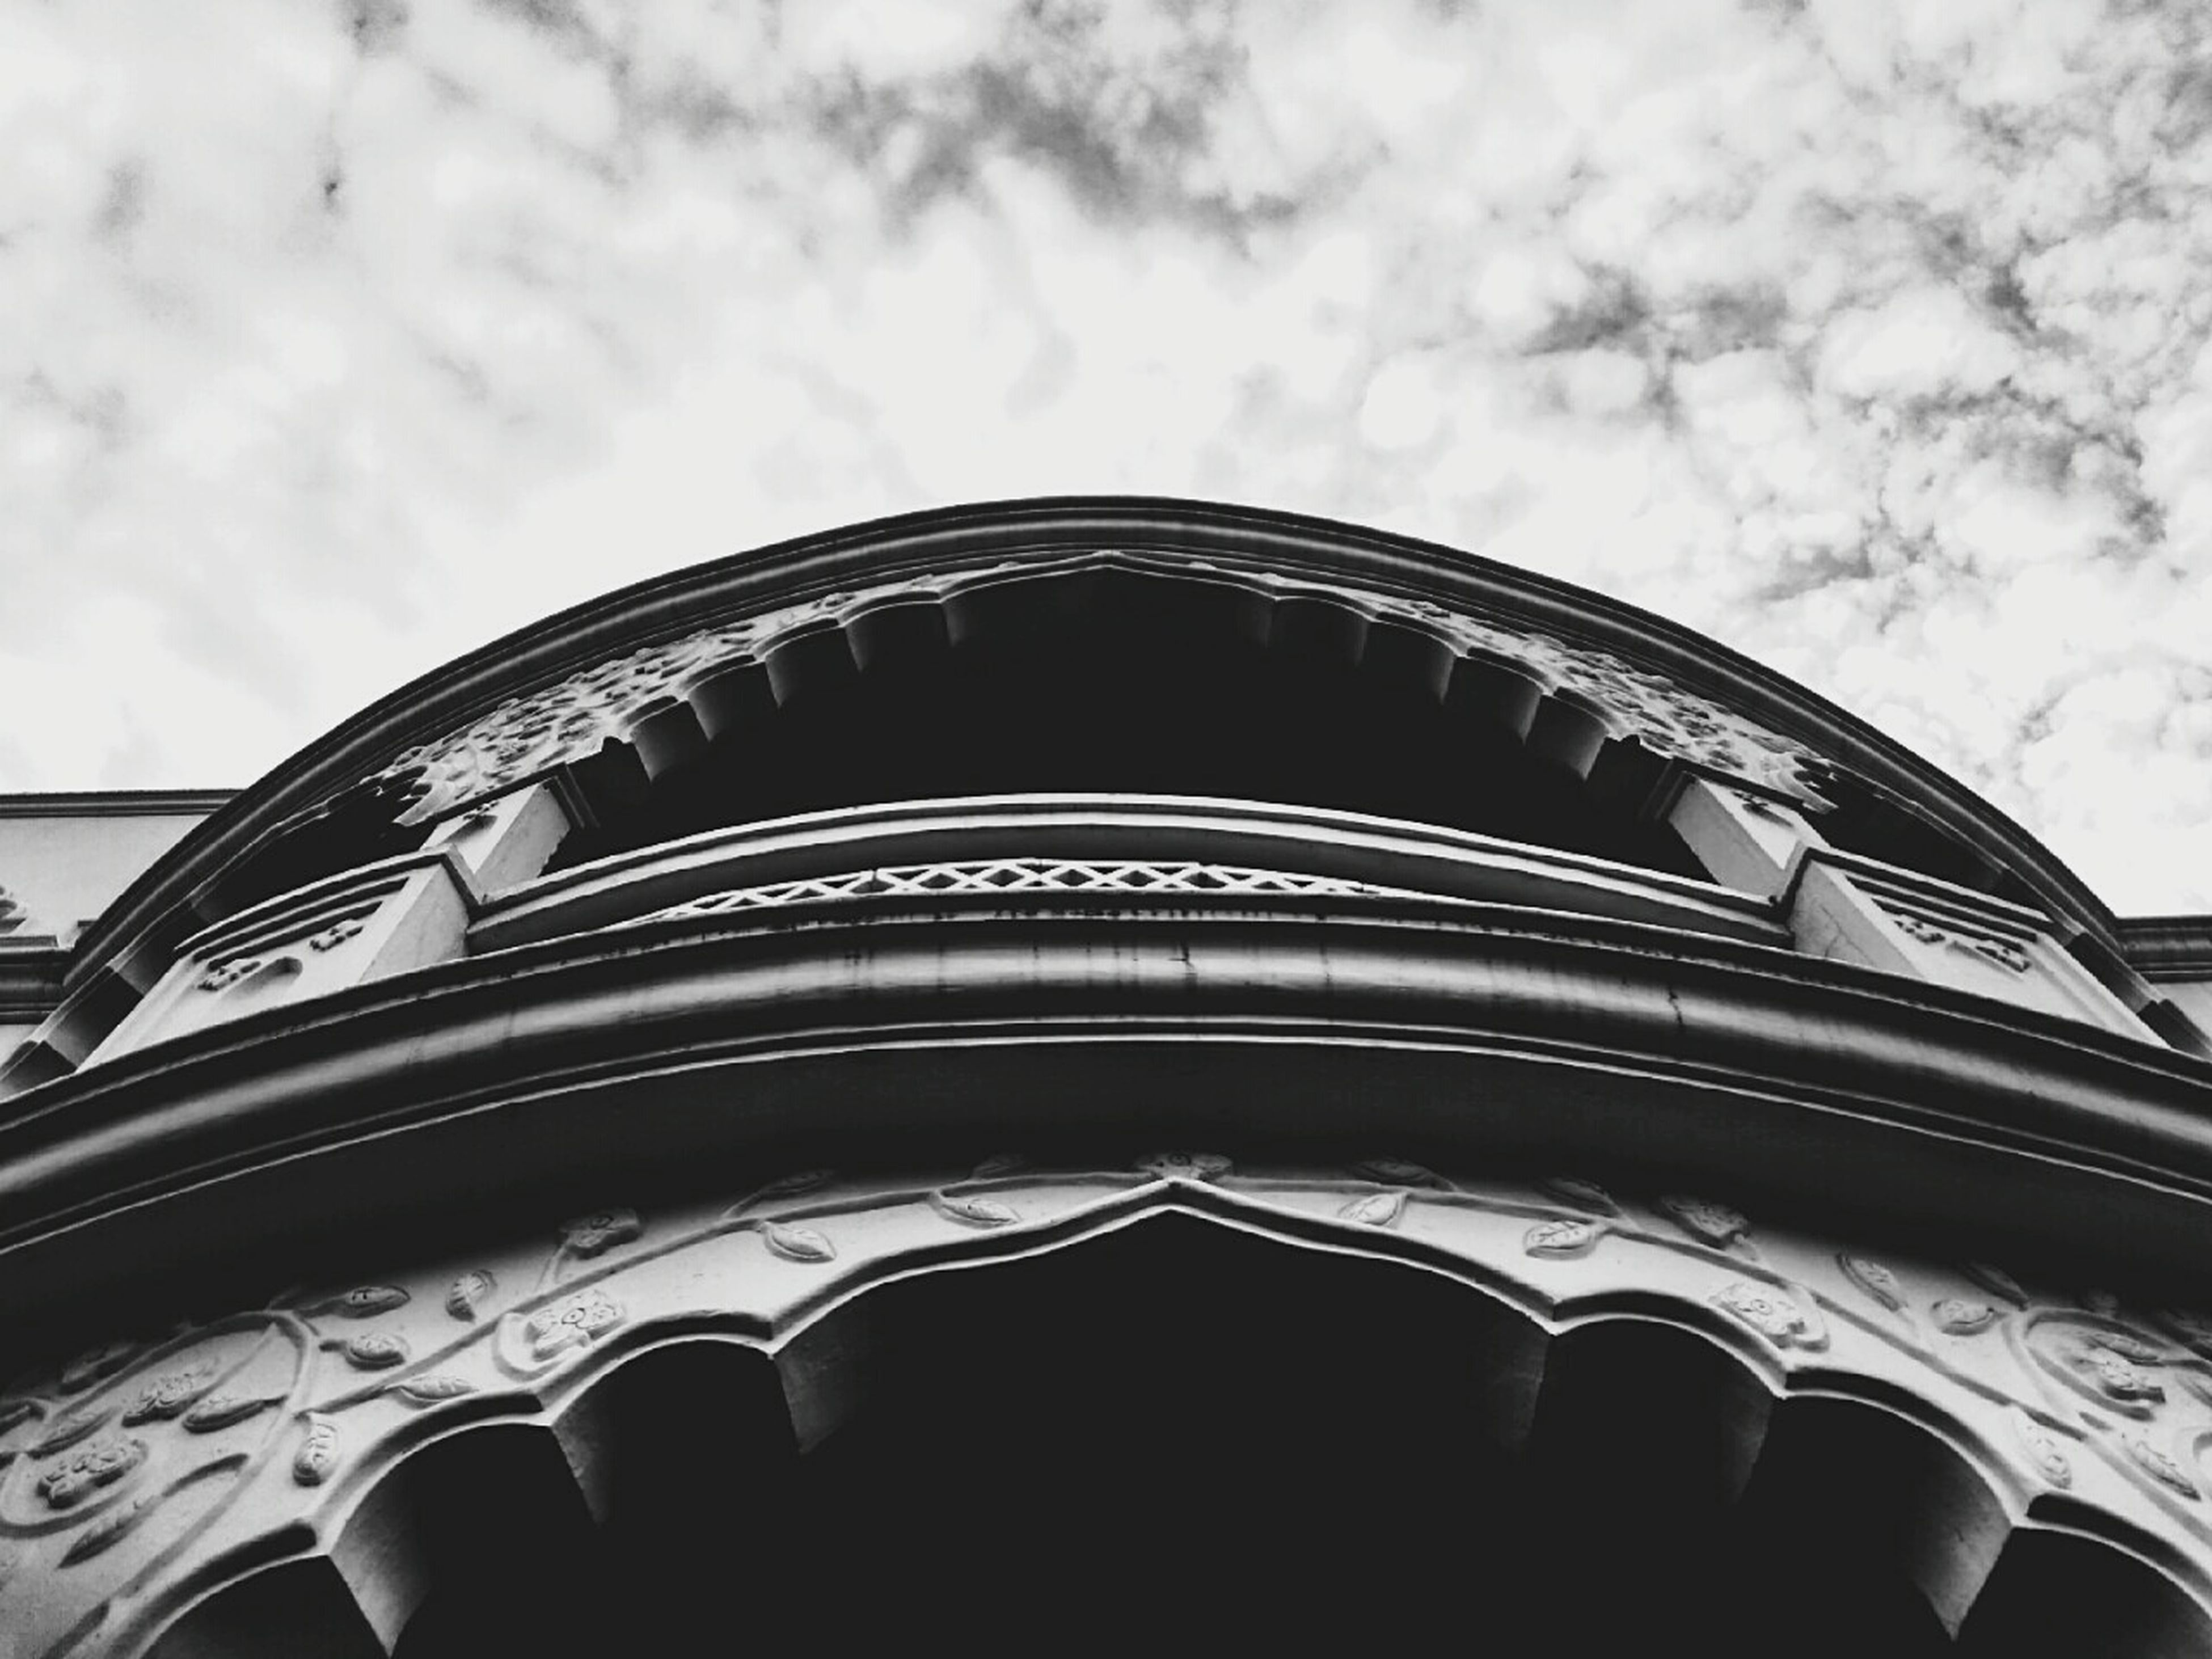 low angle view, architecture, sky, built structure, building exterior, cloud - sky, arch, cloud, cloudy, dome, outdoors, day, no people, high section, facade, building, window, architectural feature, part of, pattern